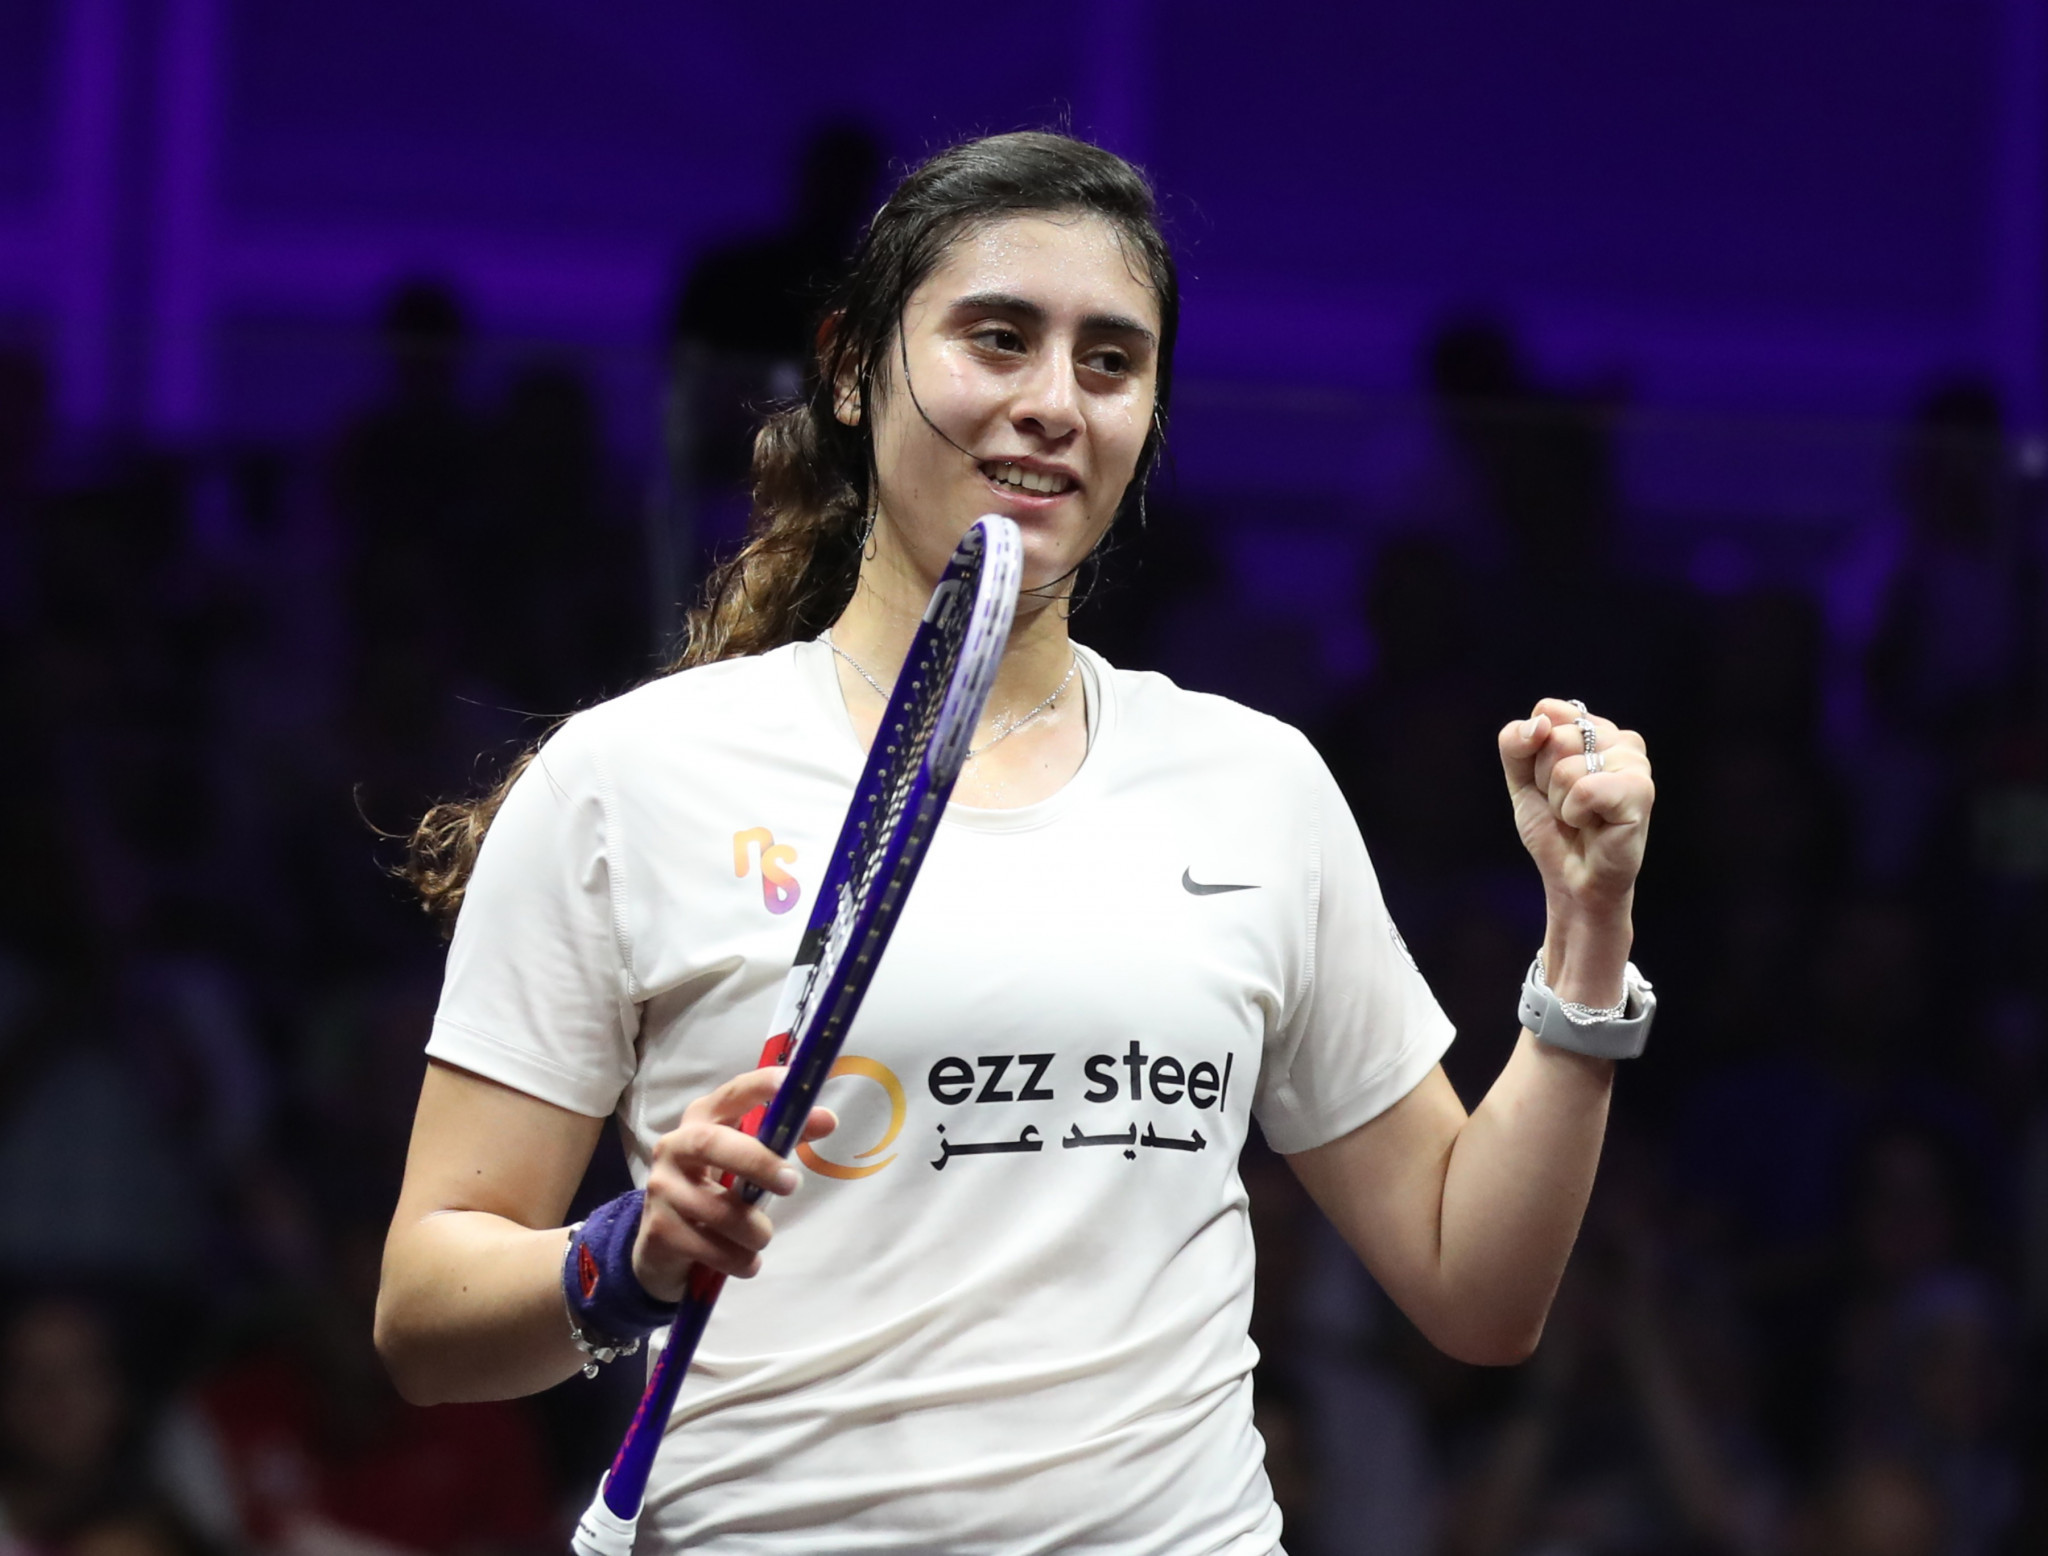 Top seeds victorious on opening day of PSA World Tour squash finals